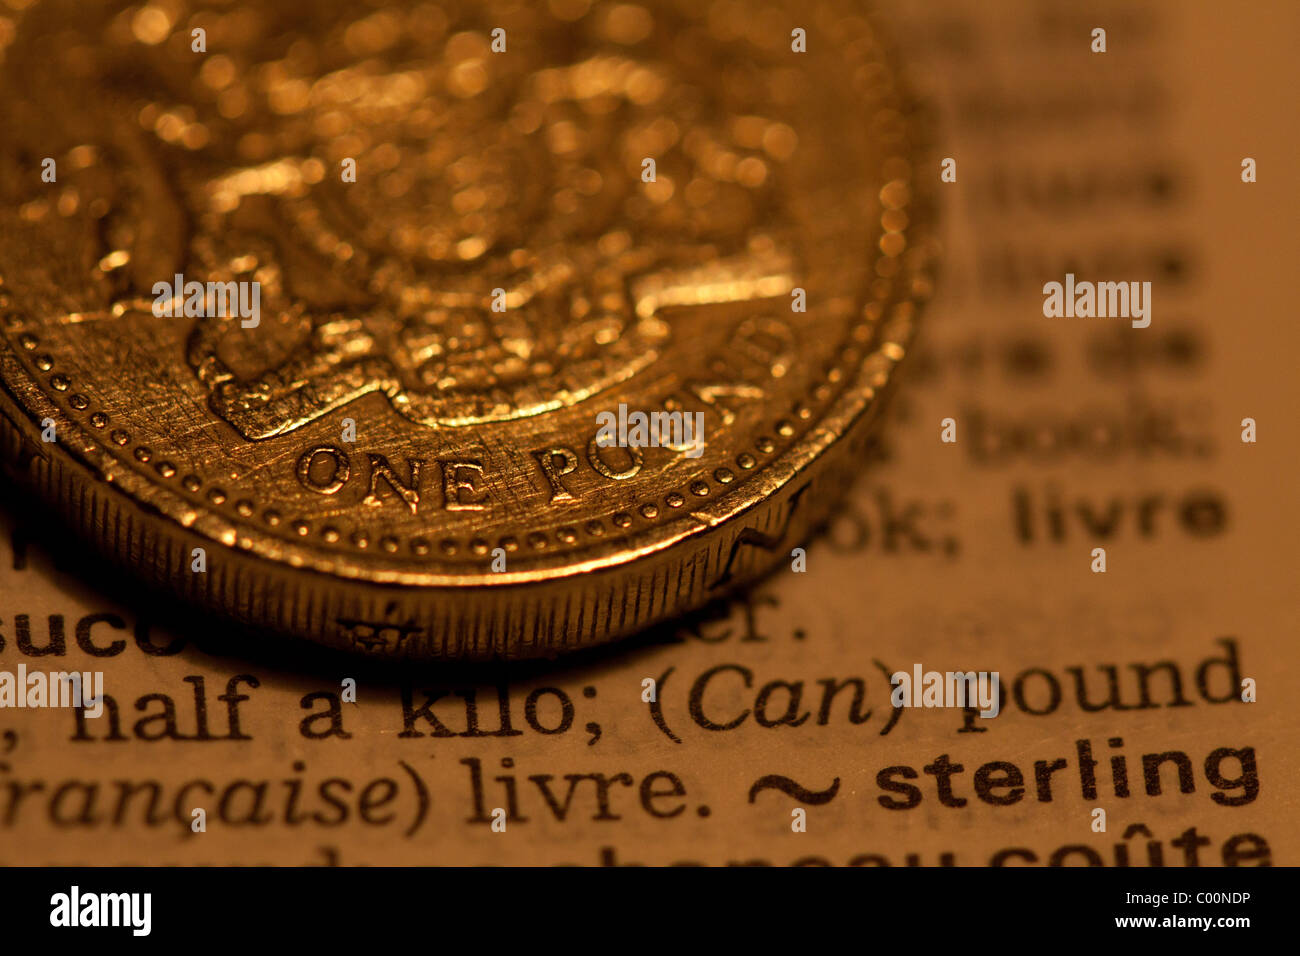 a pound on a dictionary - Stock Image